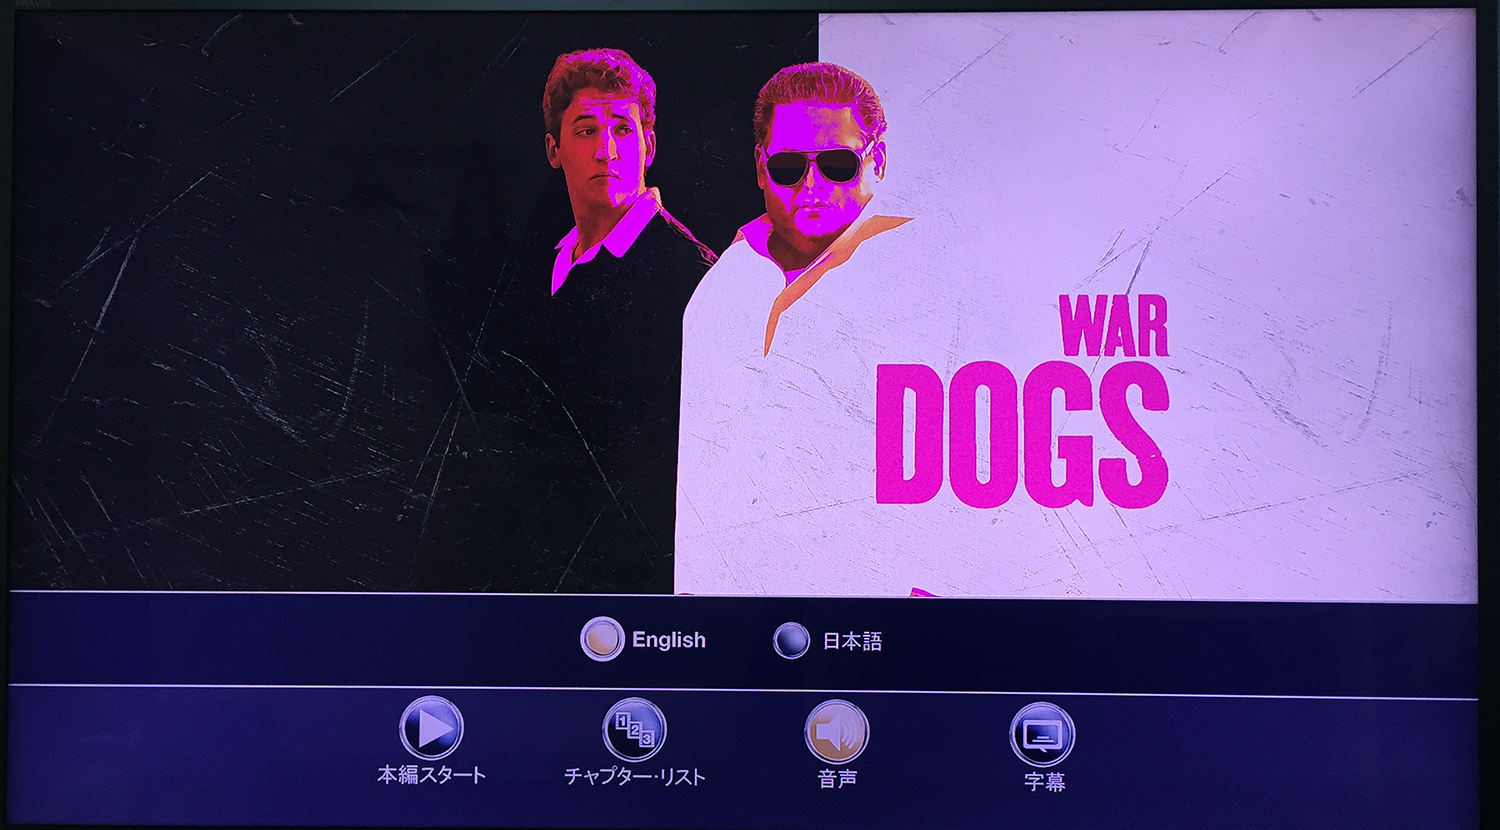 WAR DOGS 4K UHD